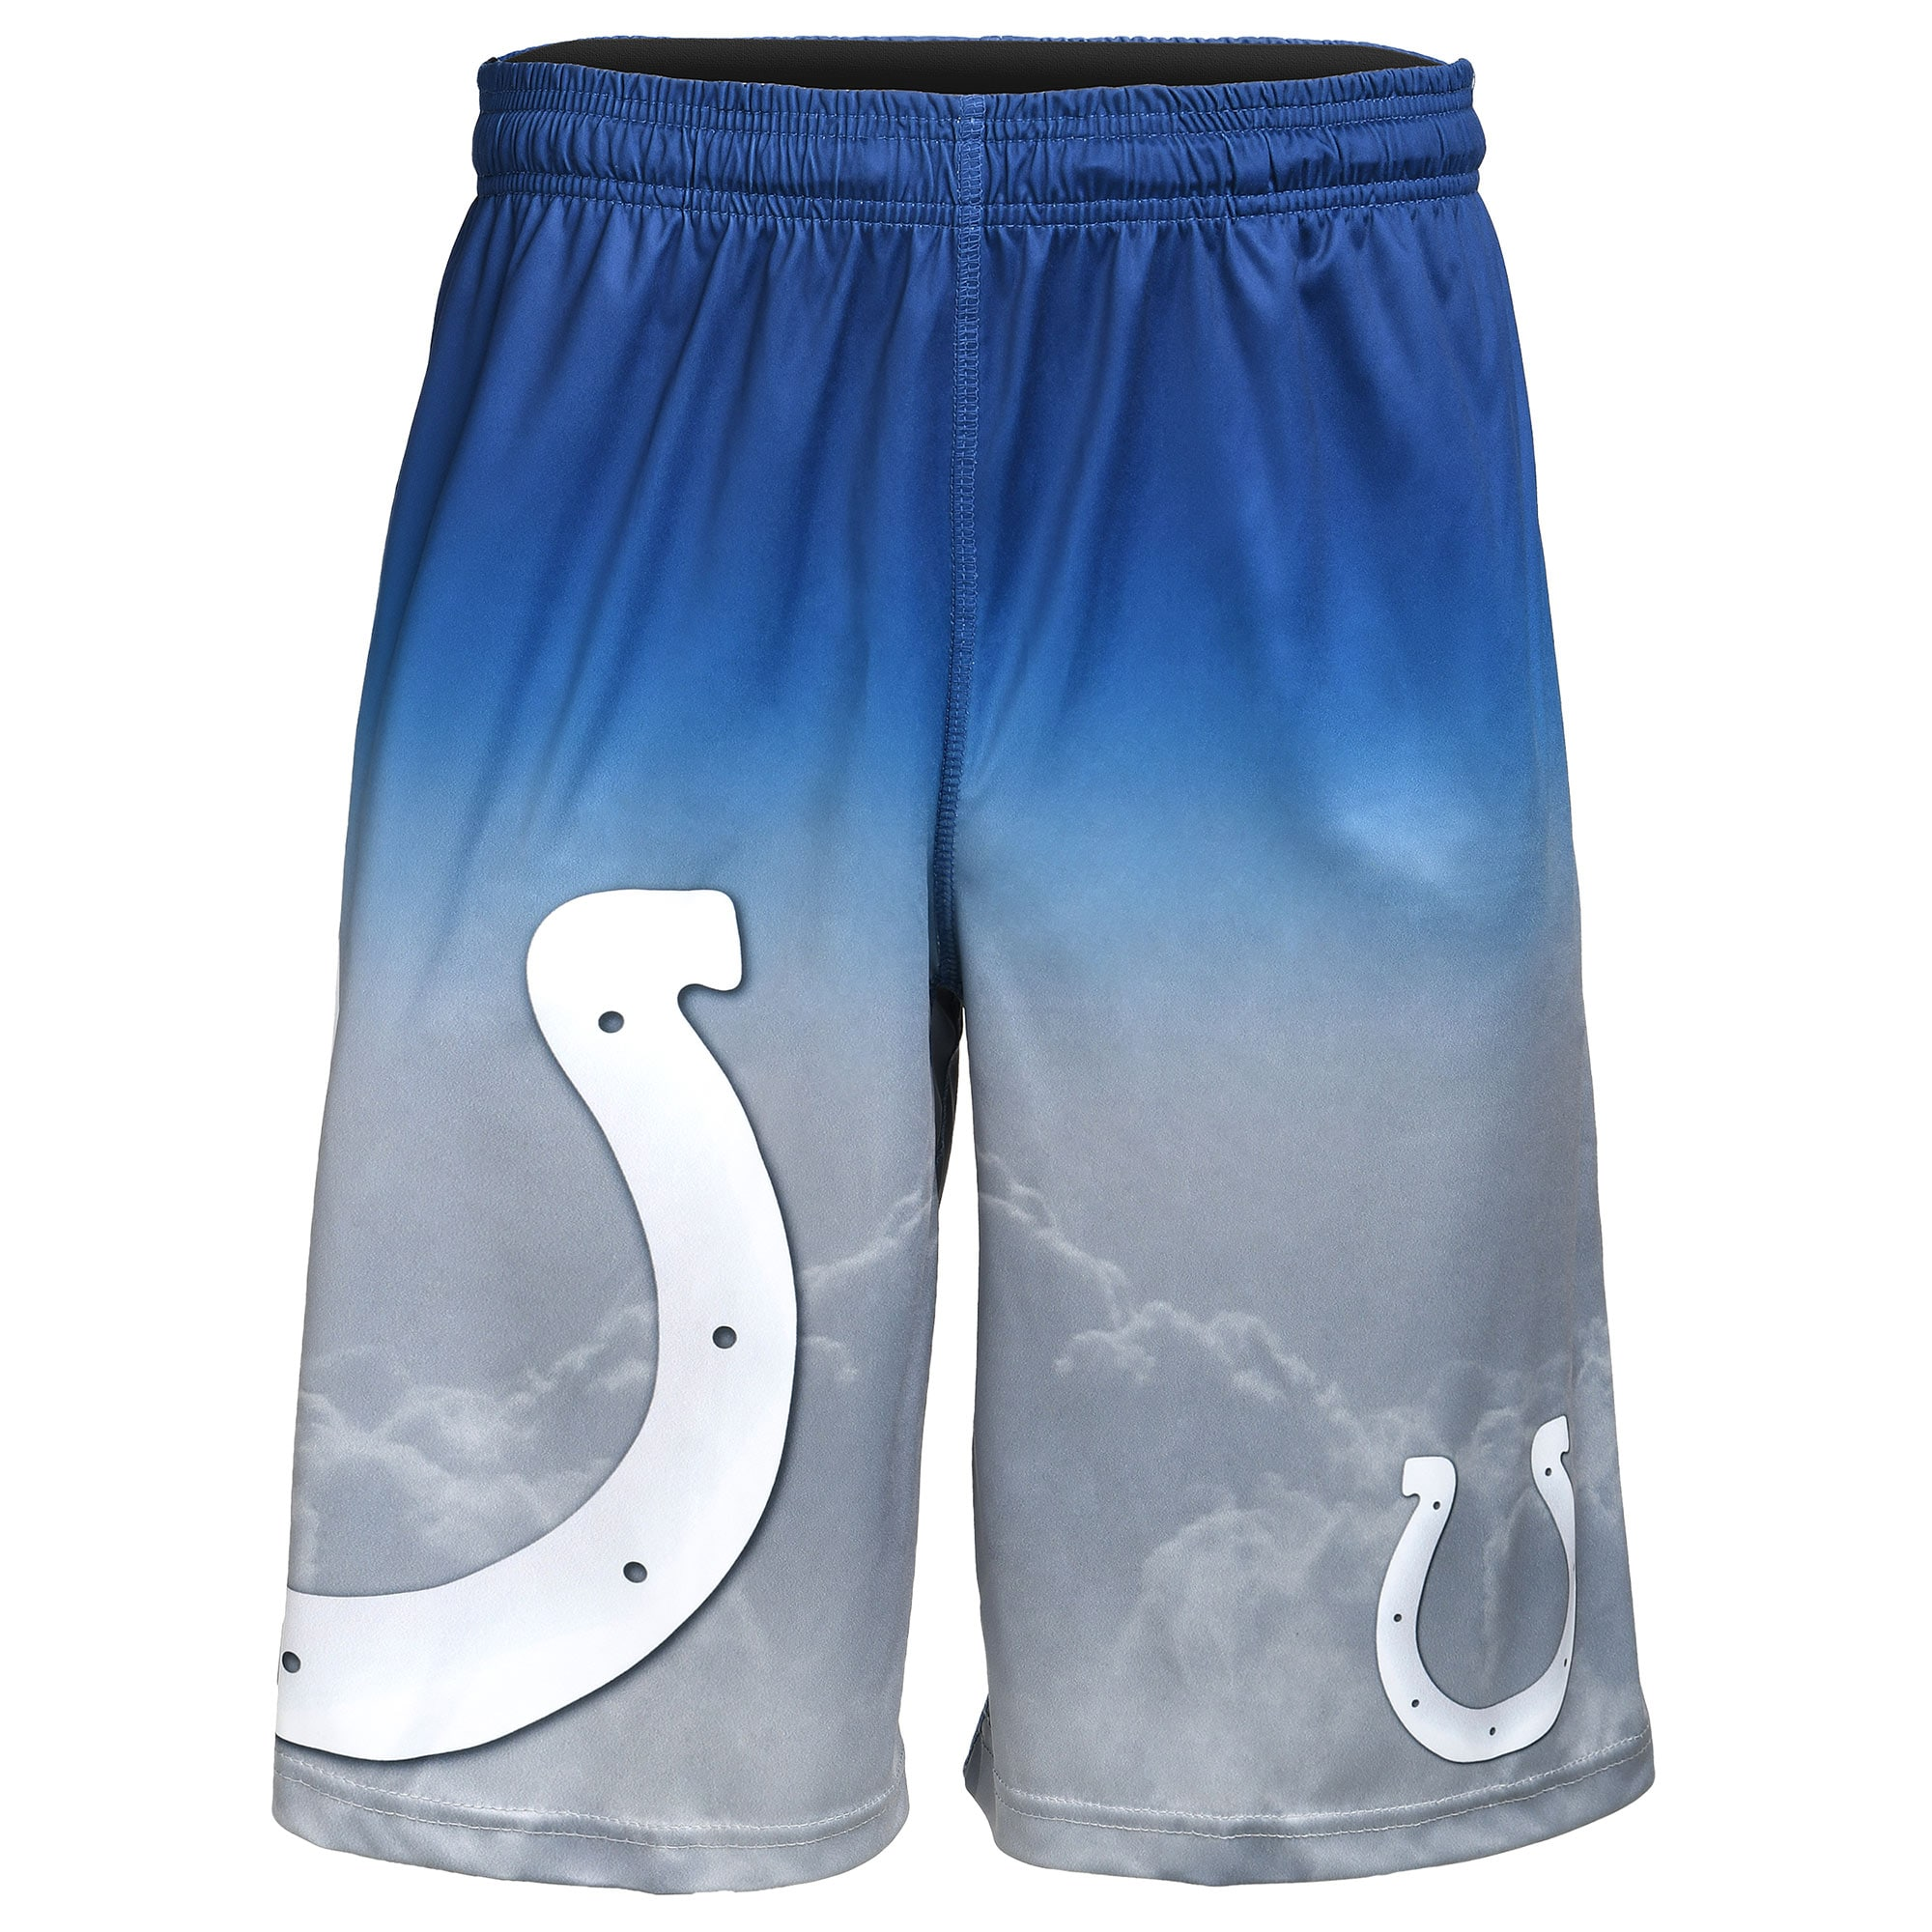 Indianapolis Colts Gradient Big Logo Training Shorts - Heathered Gray